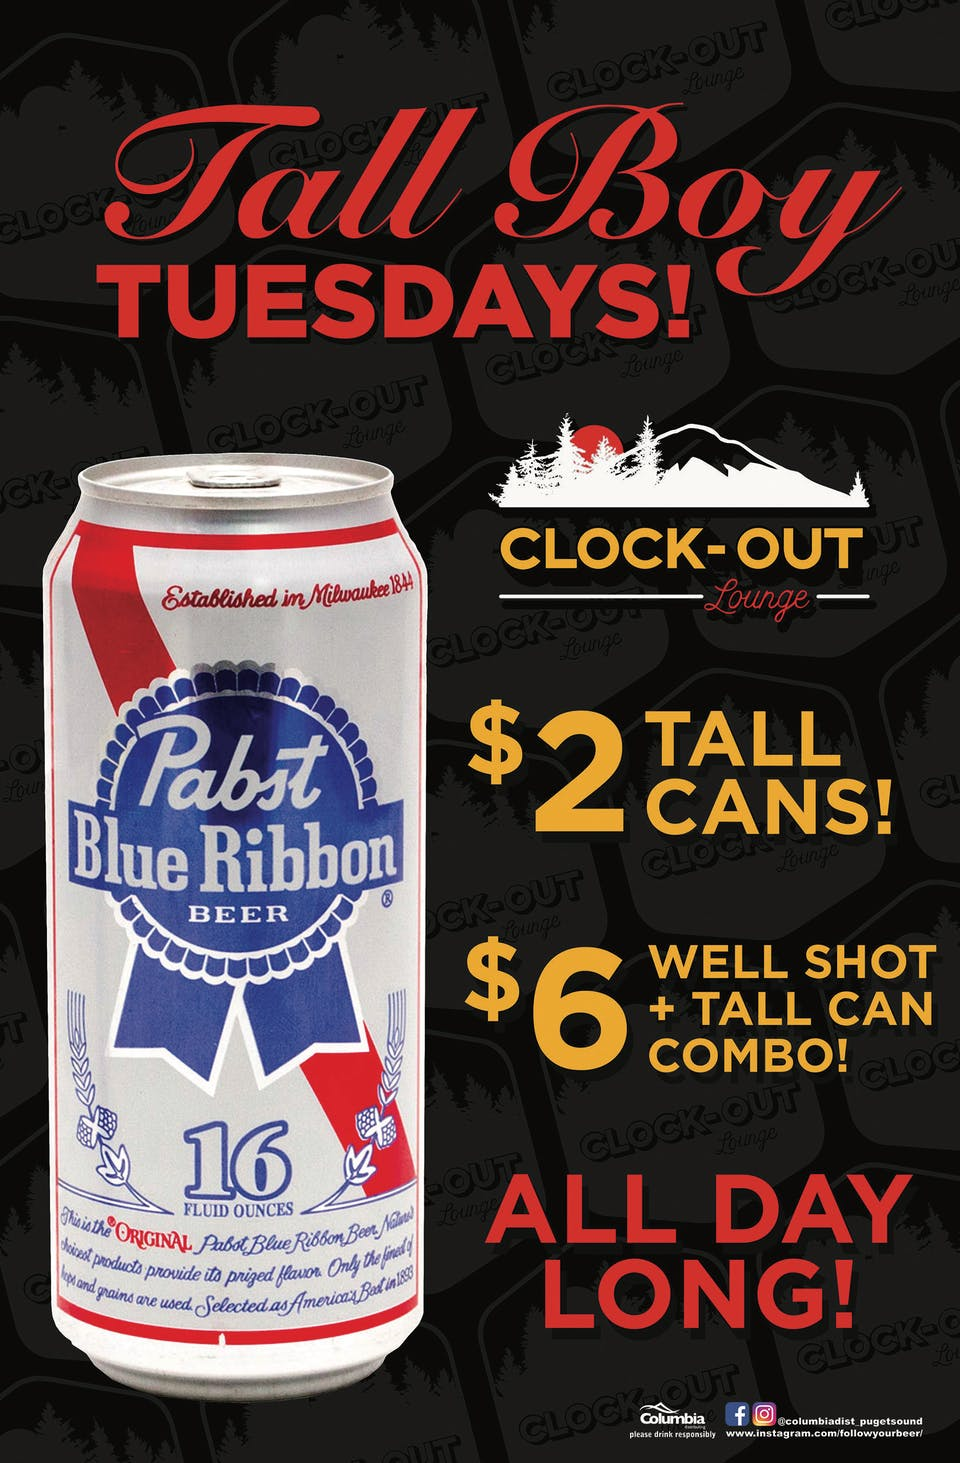 Tall Boy Tuesdays!